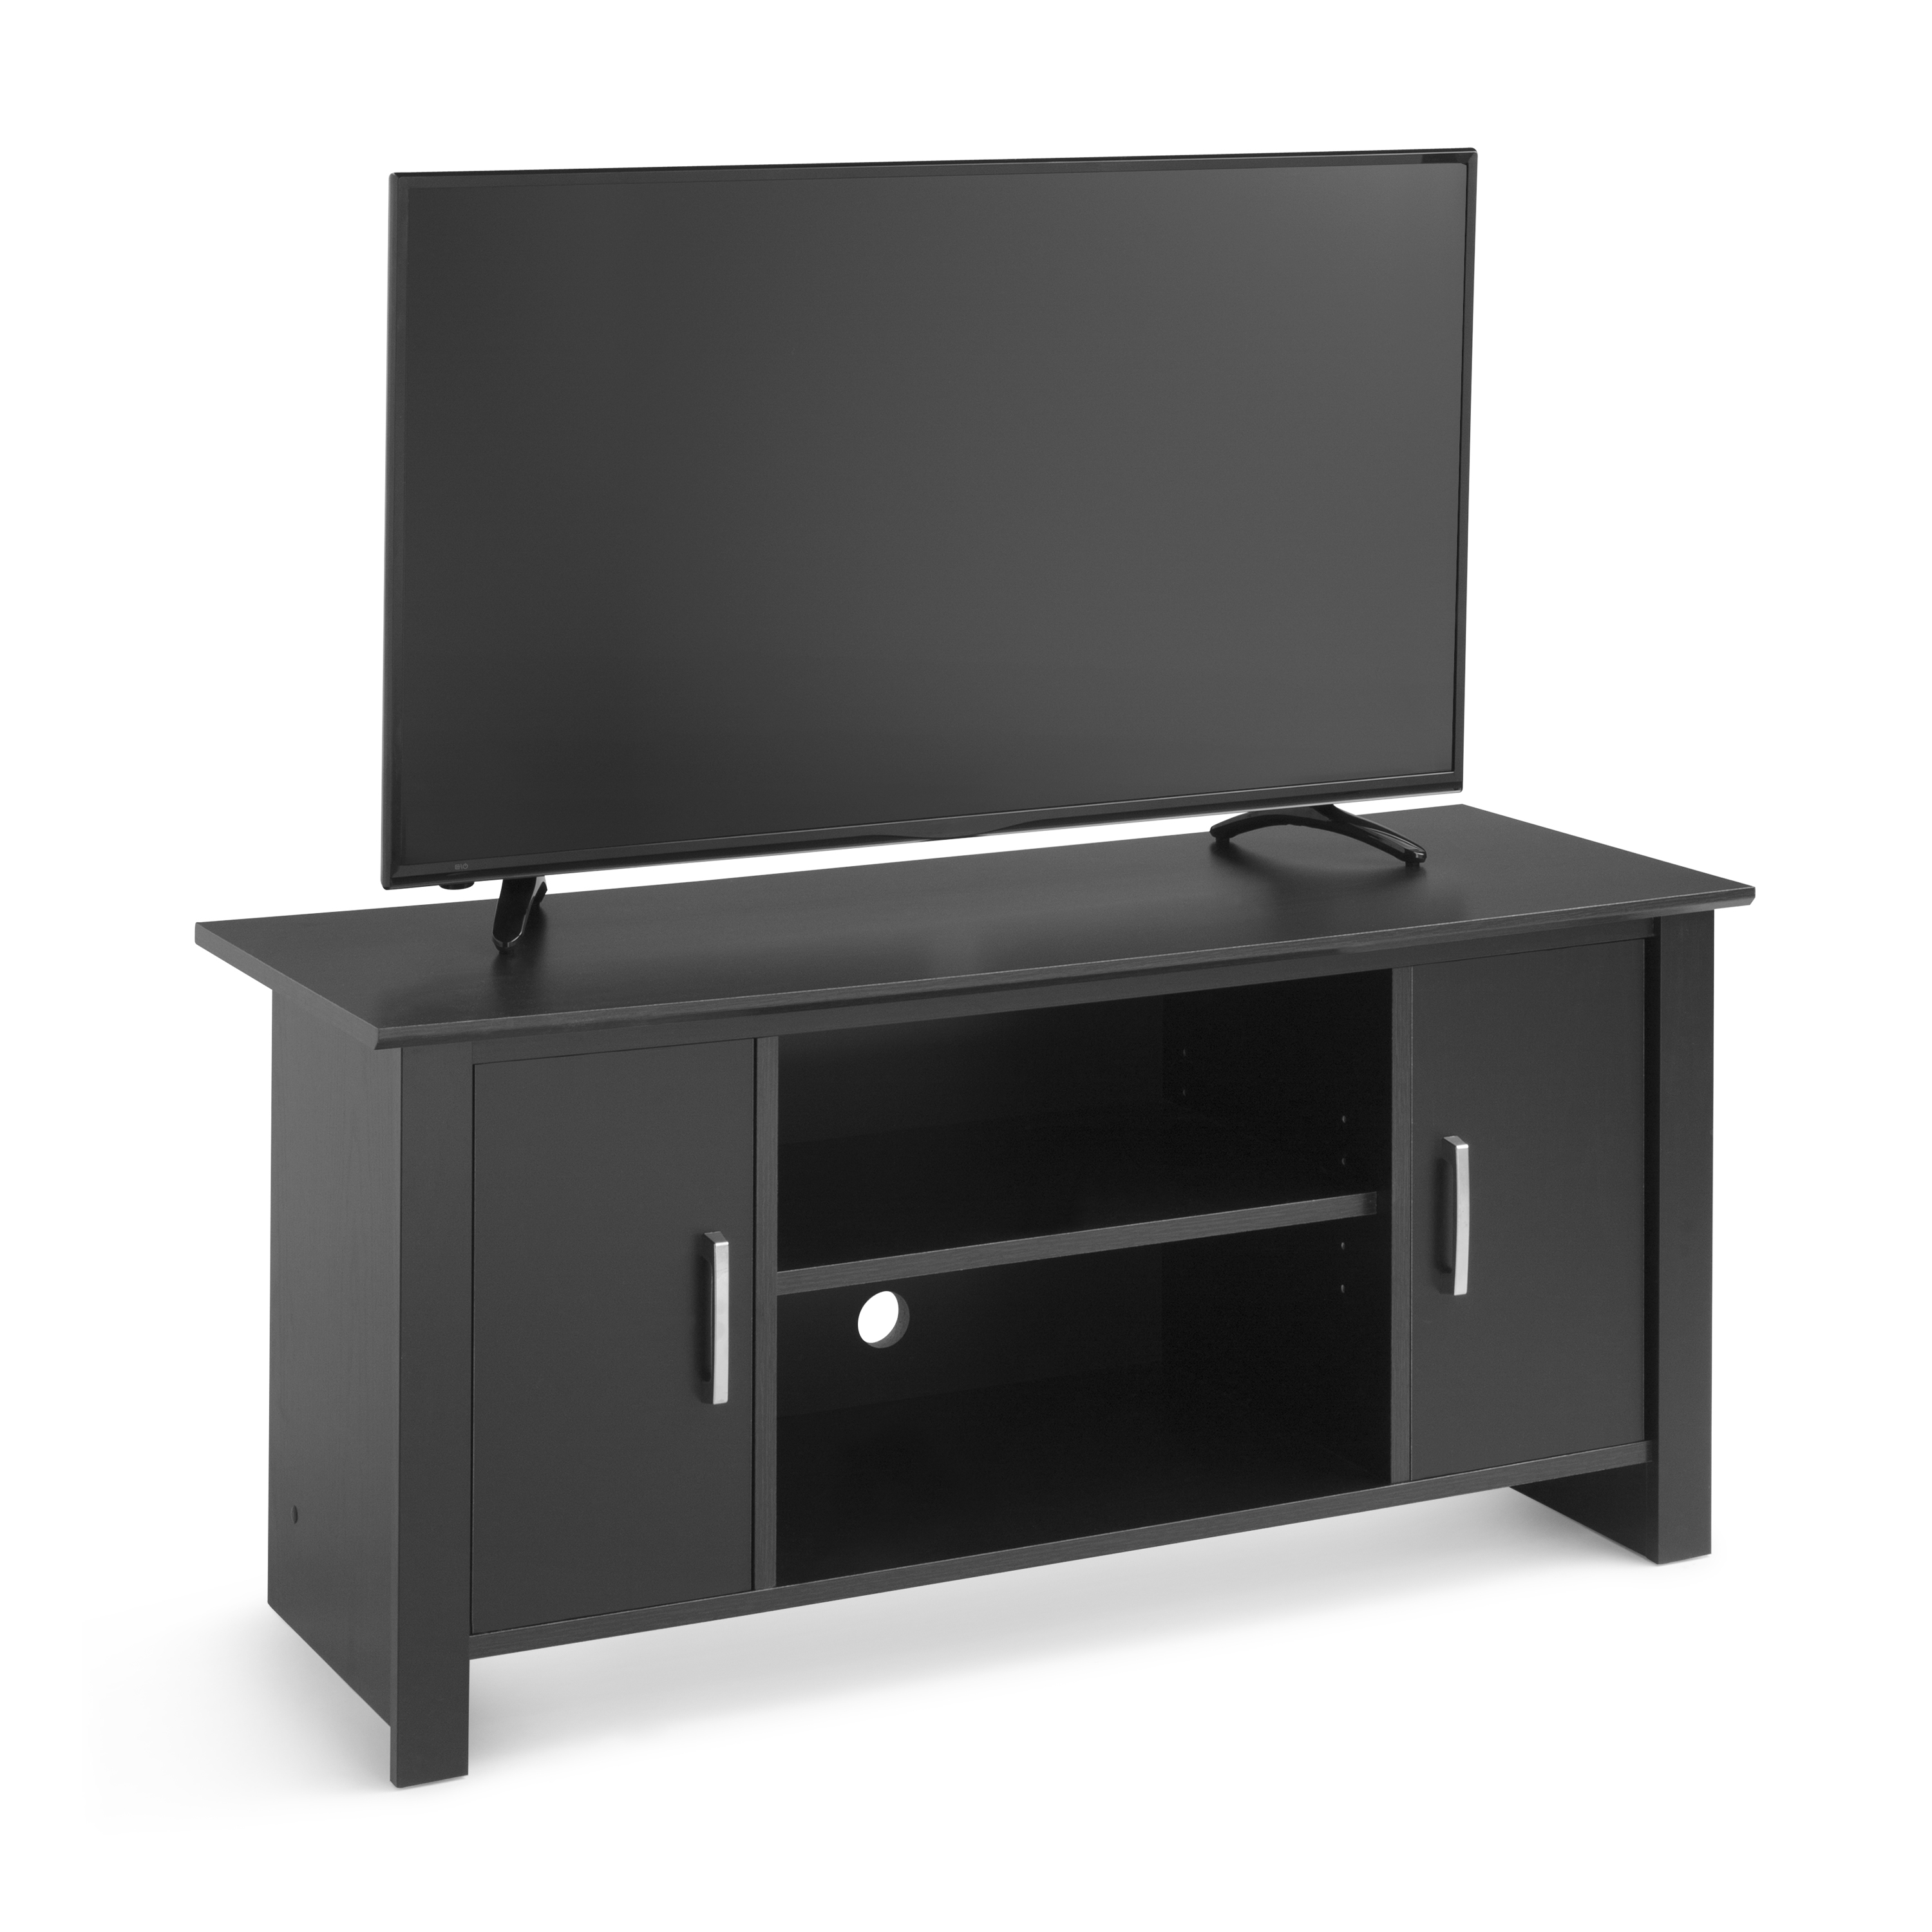 "Mainstays Tv Stand For Flat Screen Tvs Up To 47"", True Black Oak For Canyon 64 Inch Tv Stands (View 13 of 20)"